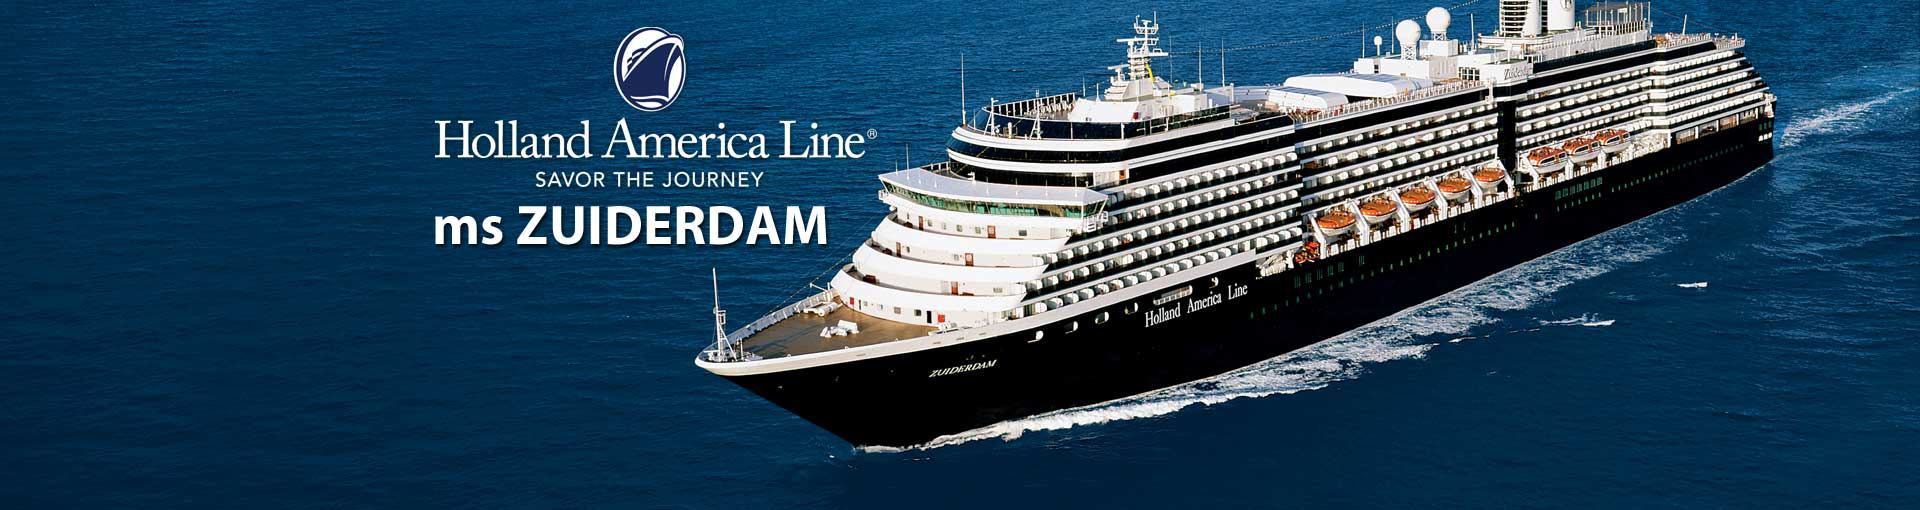 Holland America ms Zuiderdam cruise ship